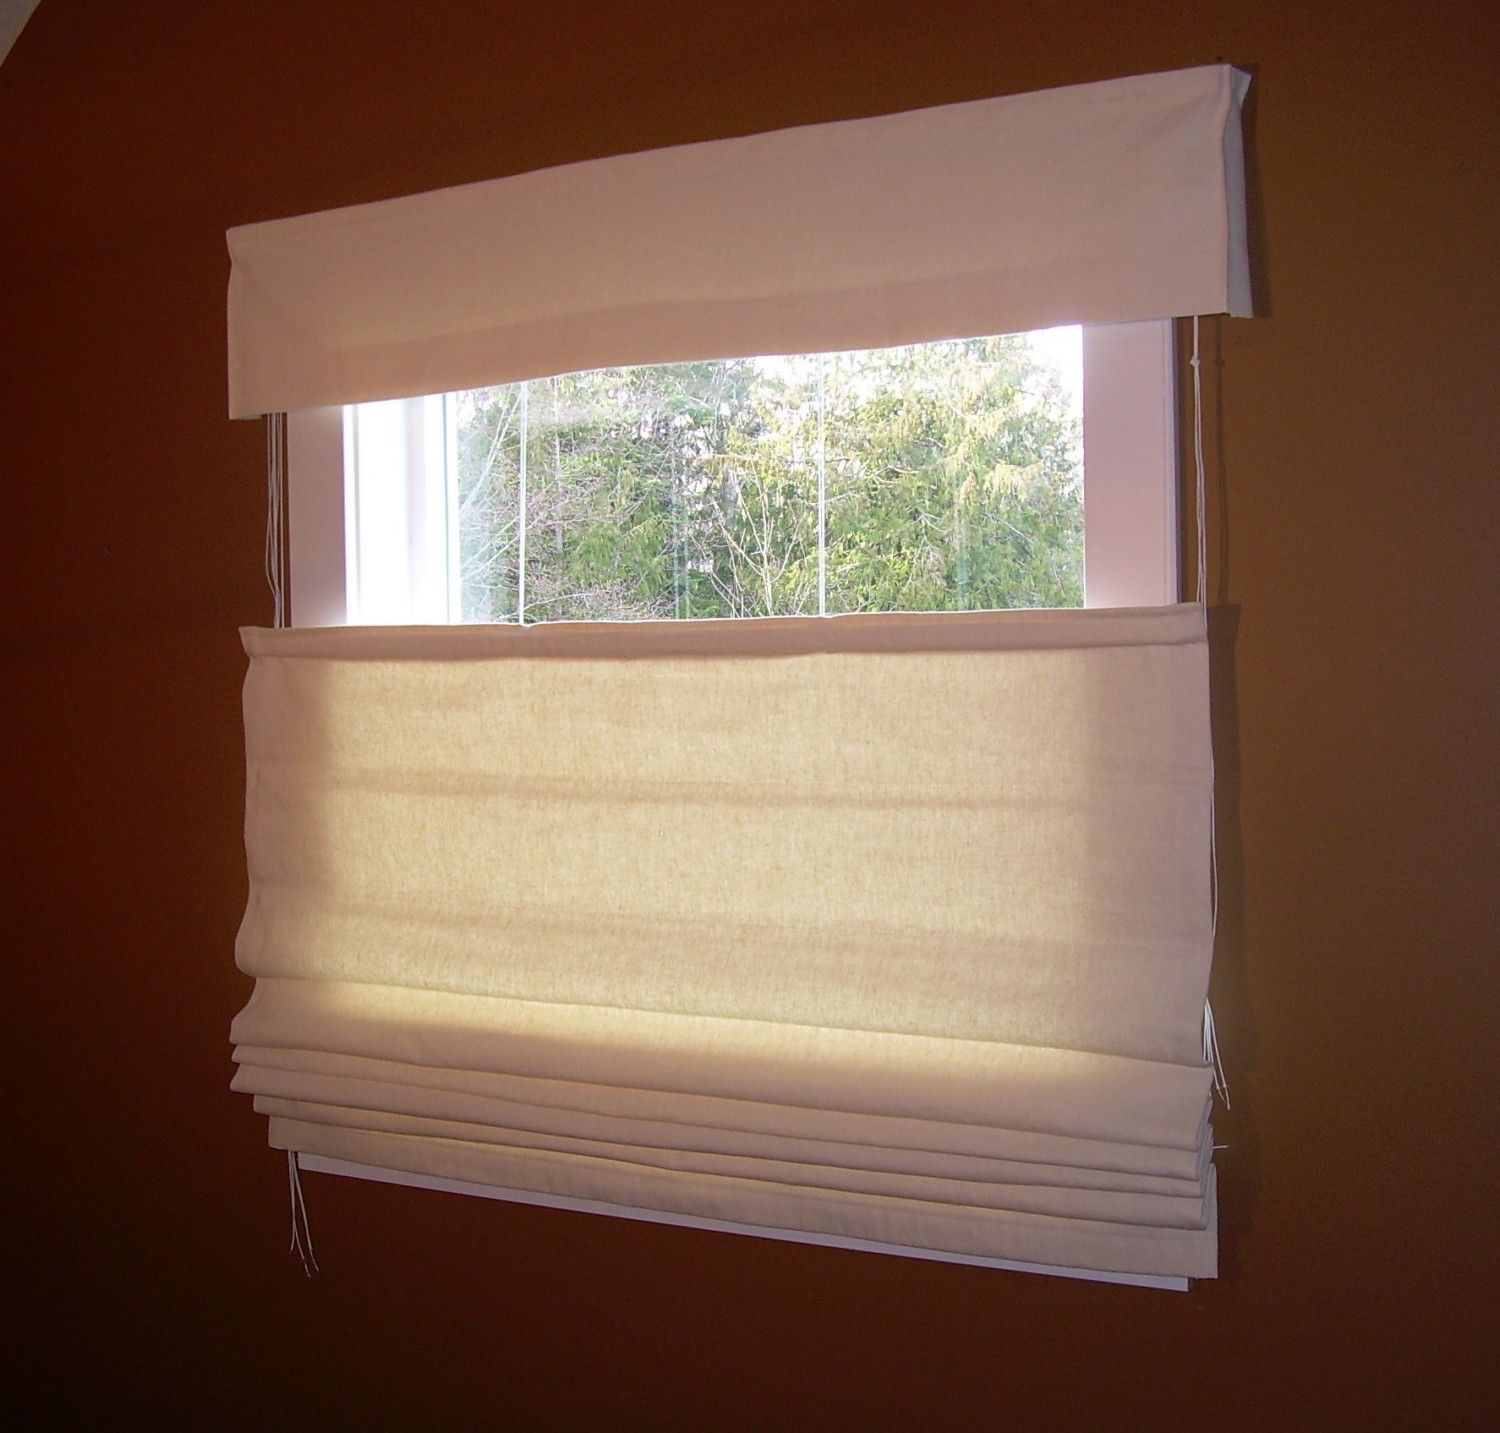 Top down bottom up roman shade - Top Down Bottom Up Roman Shades Organic Blinds 205 00 Via Etsy